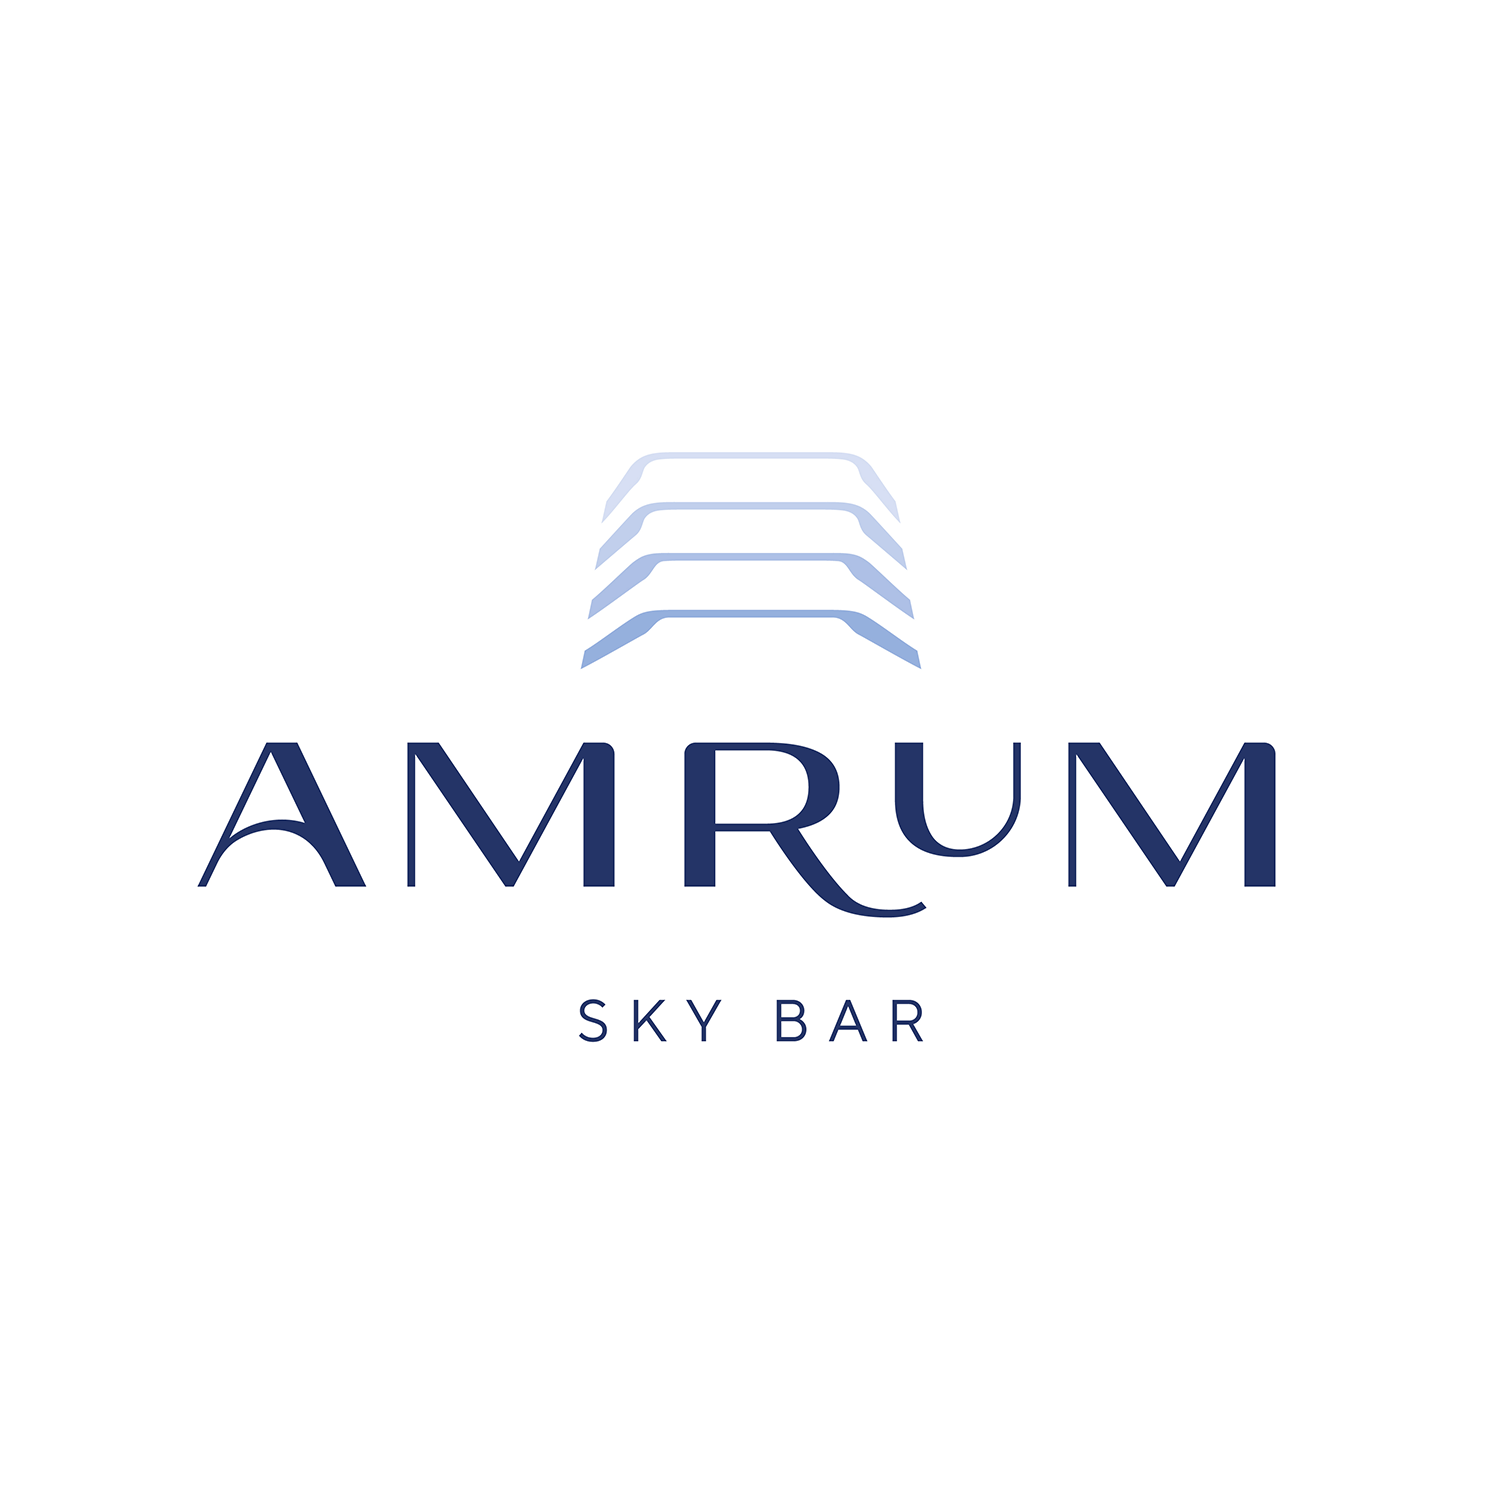 Amrum Sky Bar